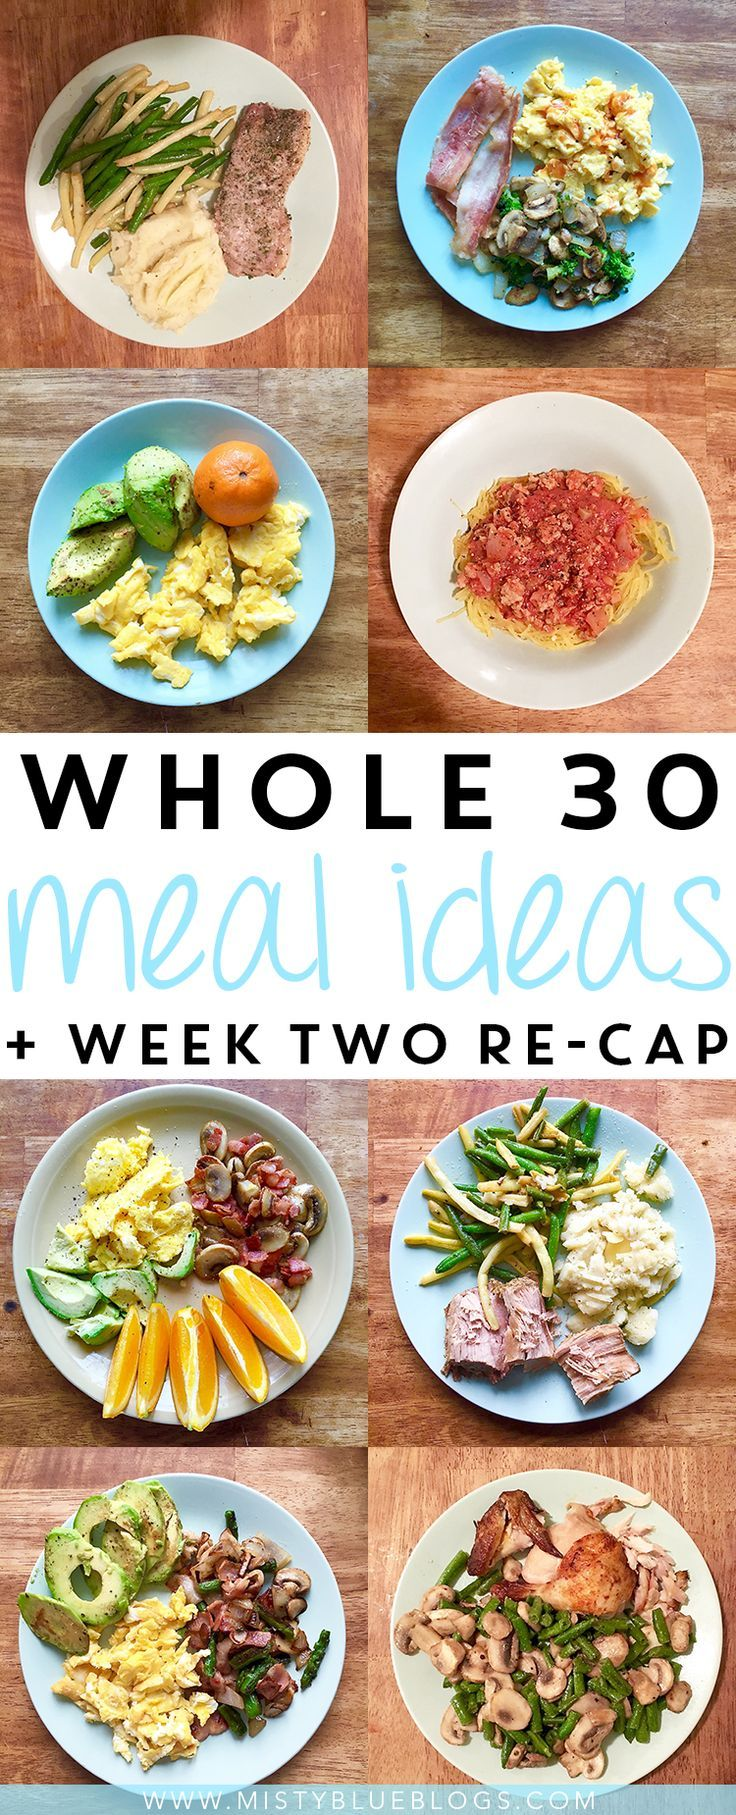 Whole 30 meal ideas and a re-cap of my second week of the challenge!